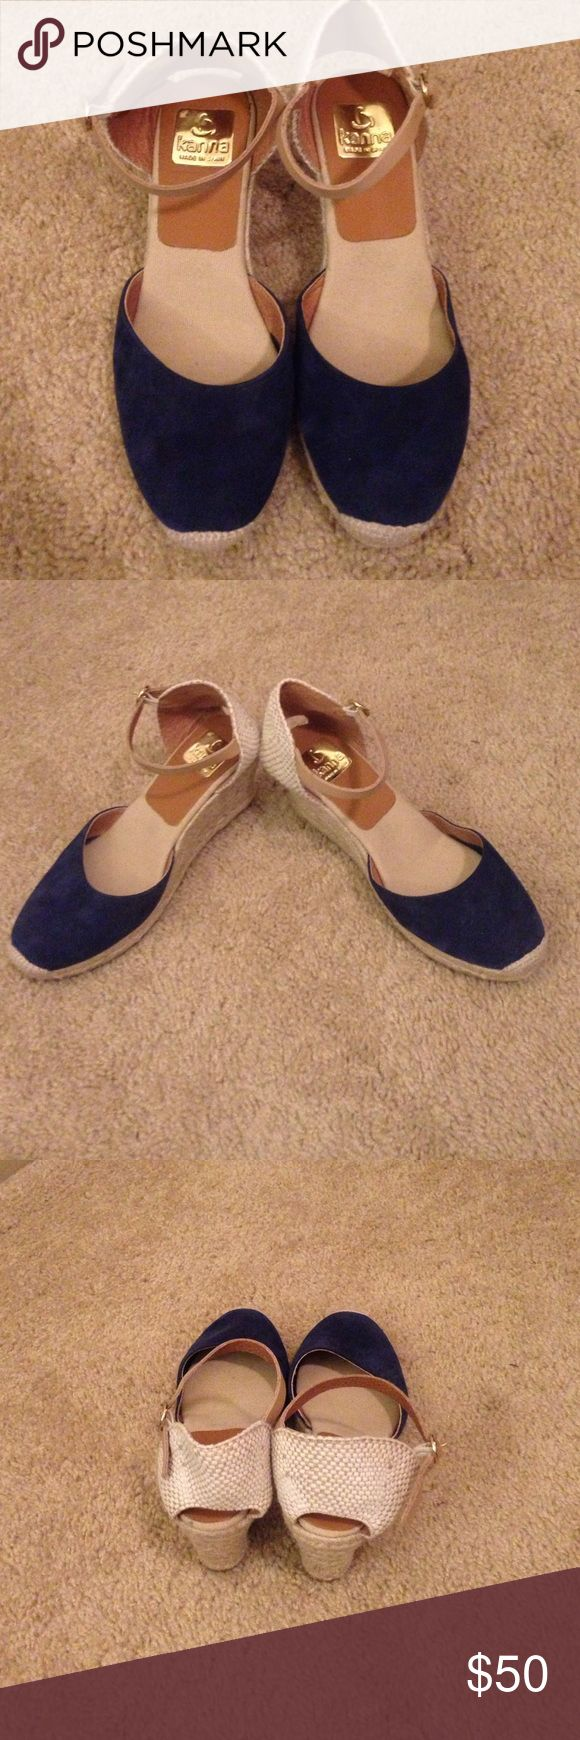 Kanna Blue and Beige Espadrilles Kanna espadrille high heel shoes with adjustable ankle strap. Italian brand, made in Spain. Blue front has soft leather. Sole in good condition Kanna Shoes Espadrilles